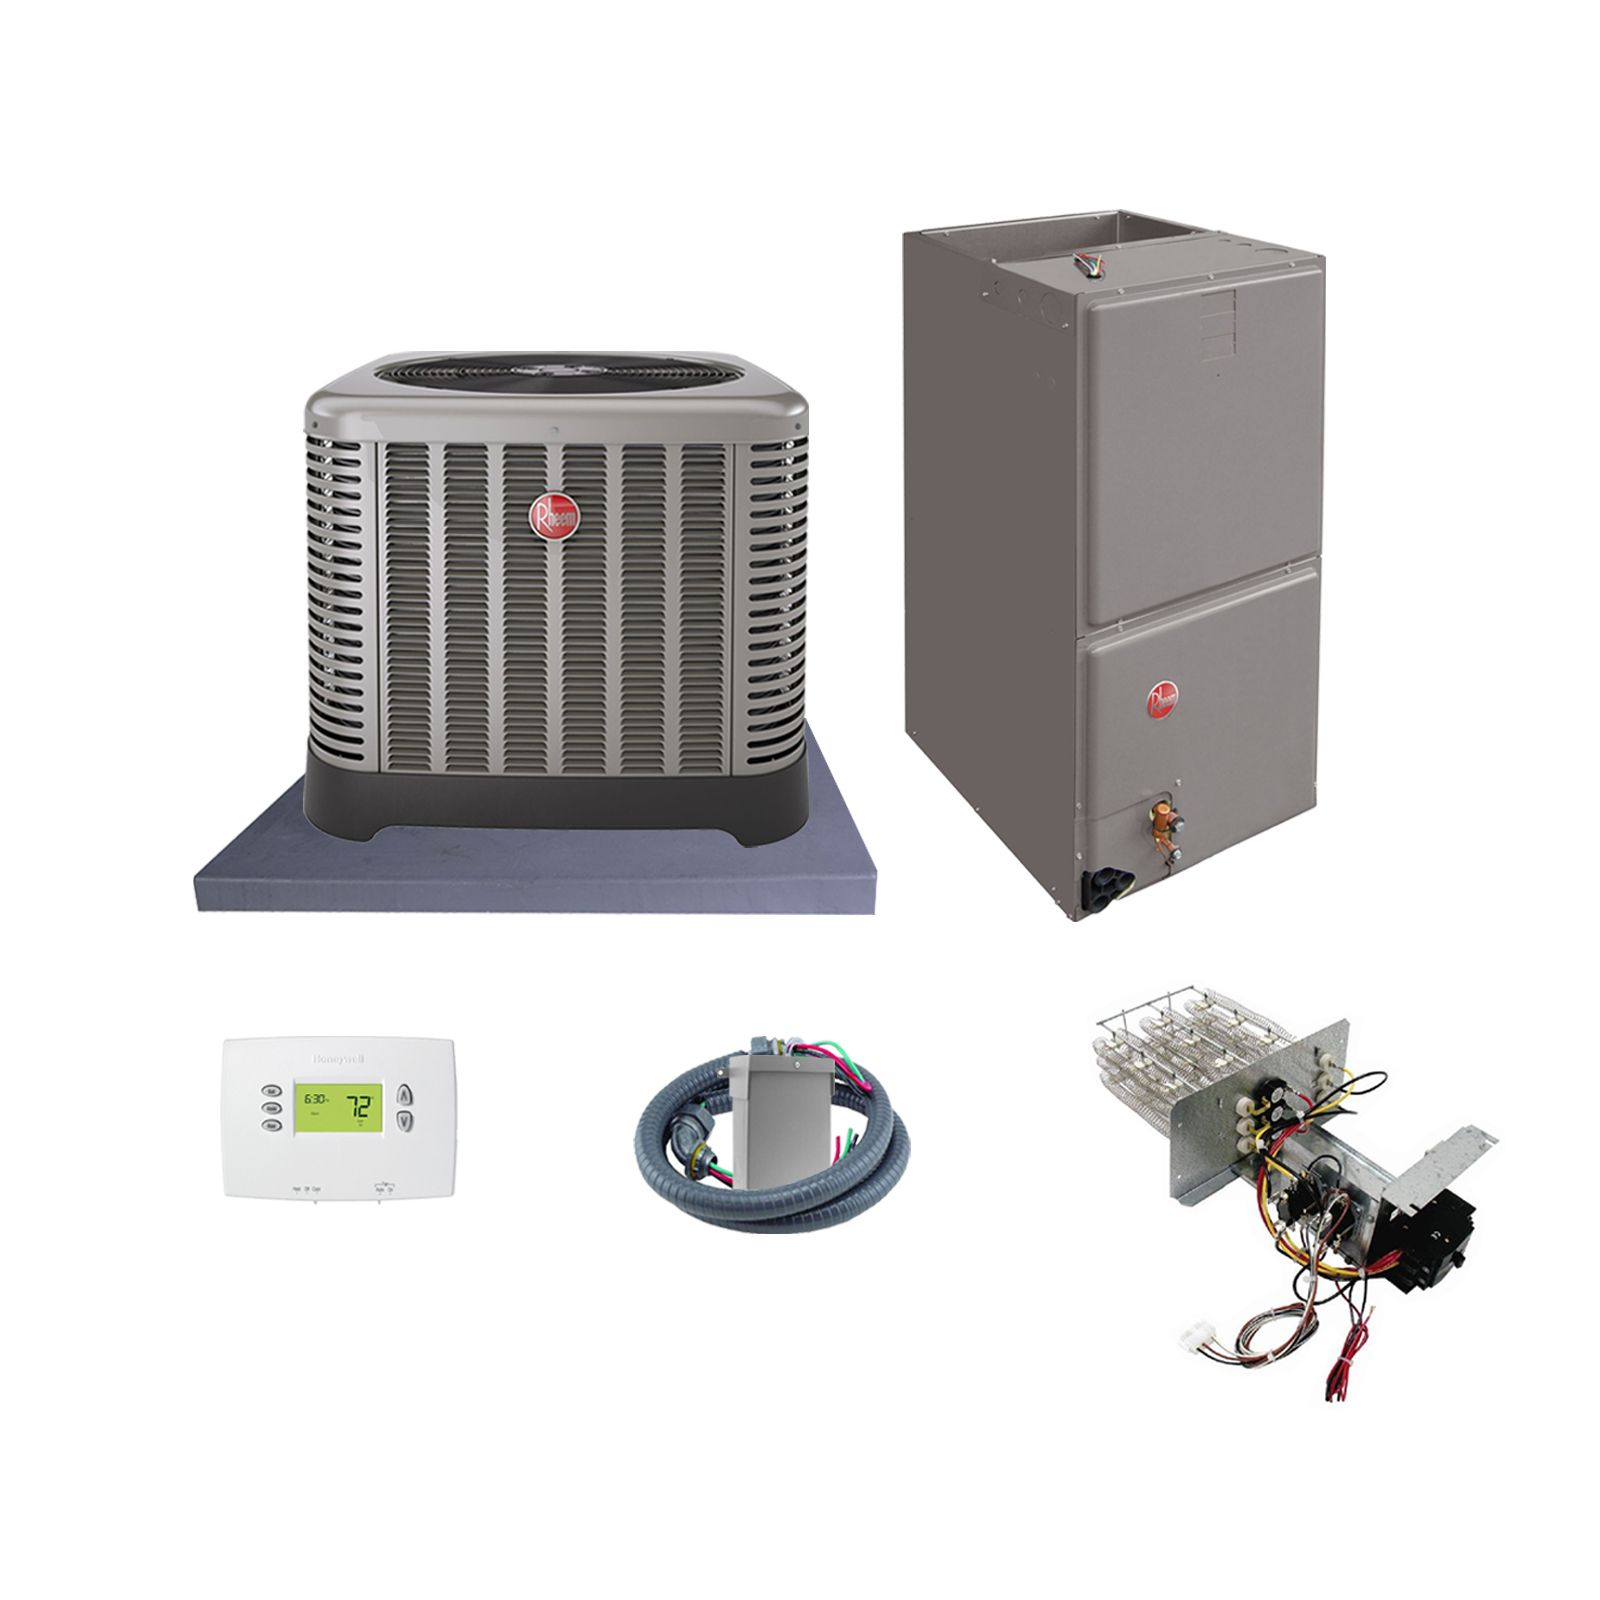 Rheem (AHRI 7490963) 2 Ton, 14 SEER/11.5 EER Classic Series, Horizontal Air Conditioner Split System and Install Kit